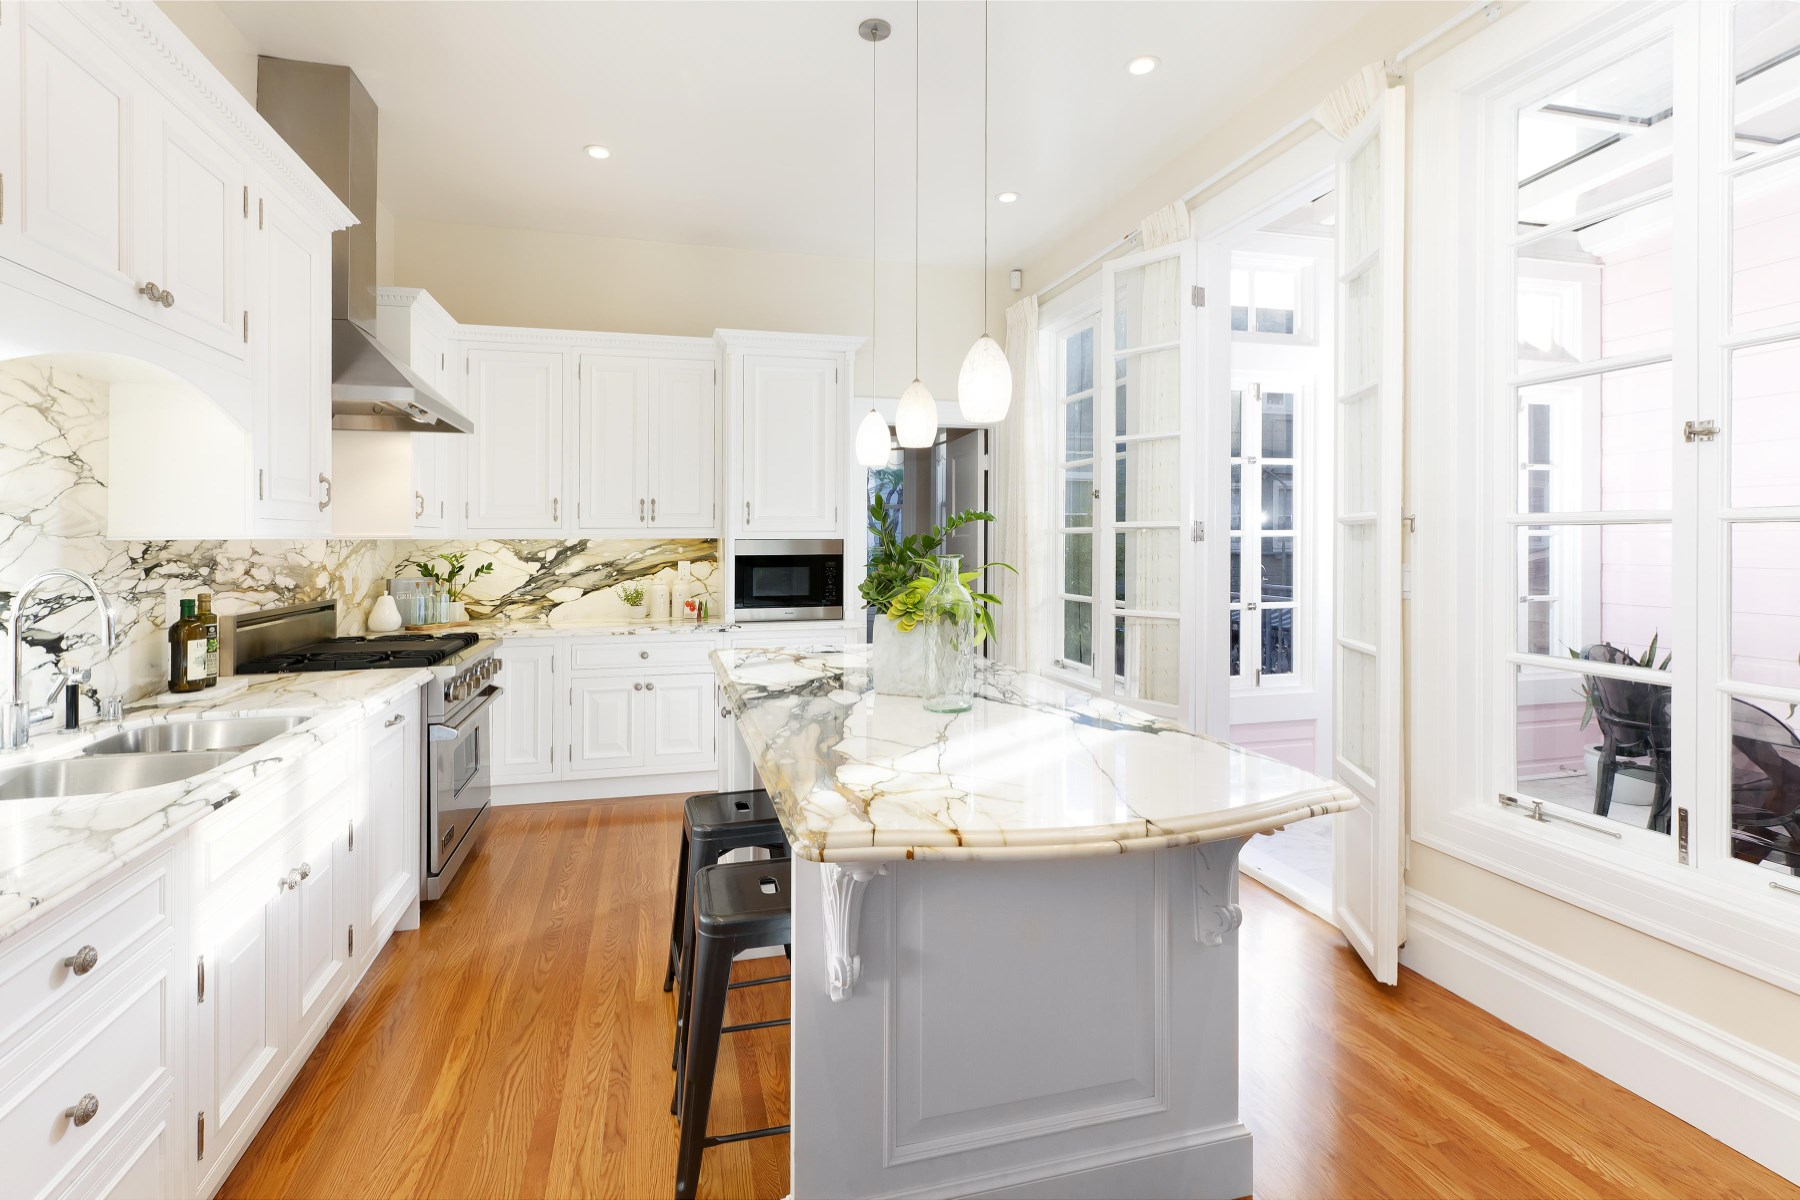 Single Family Home for Sale at Modern Finishes Classic Detailing 1918 Divisadero St San Francisco, California, 94115 United States